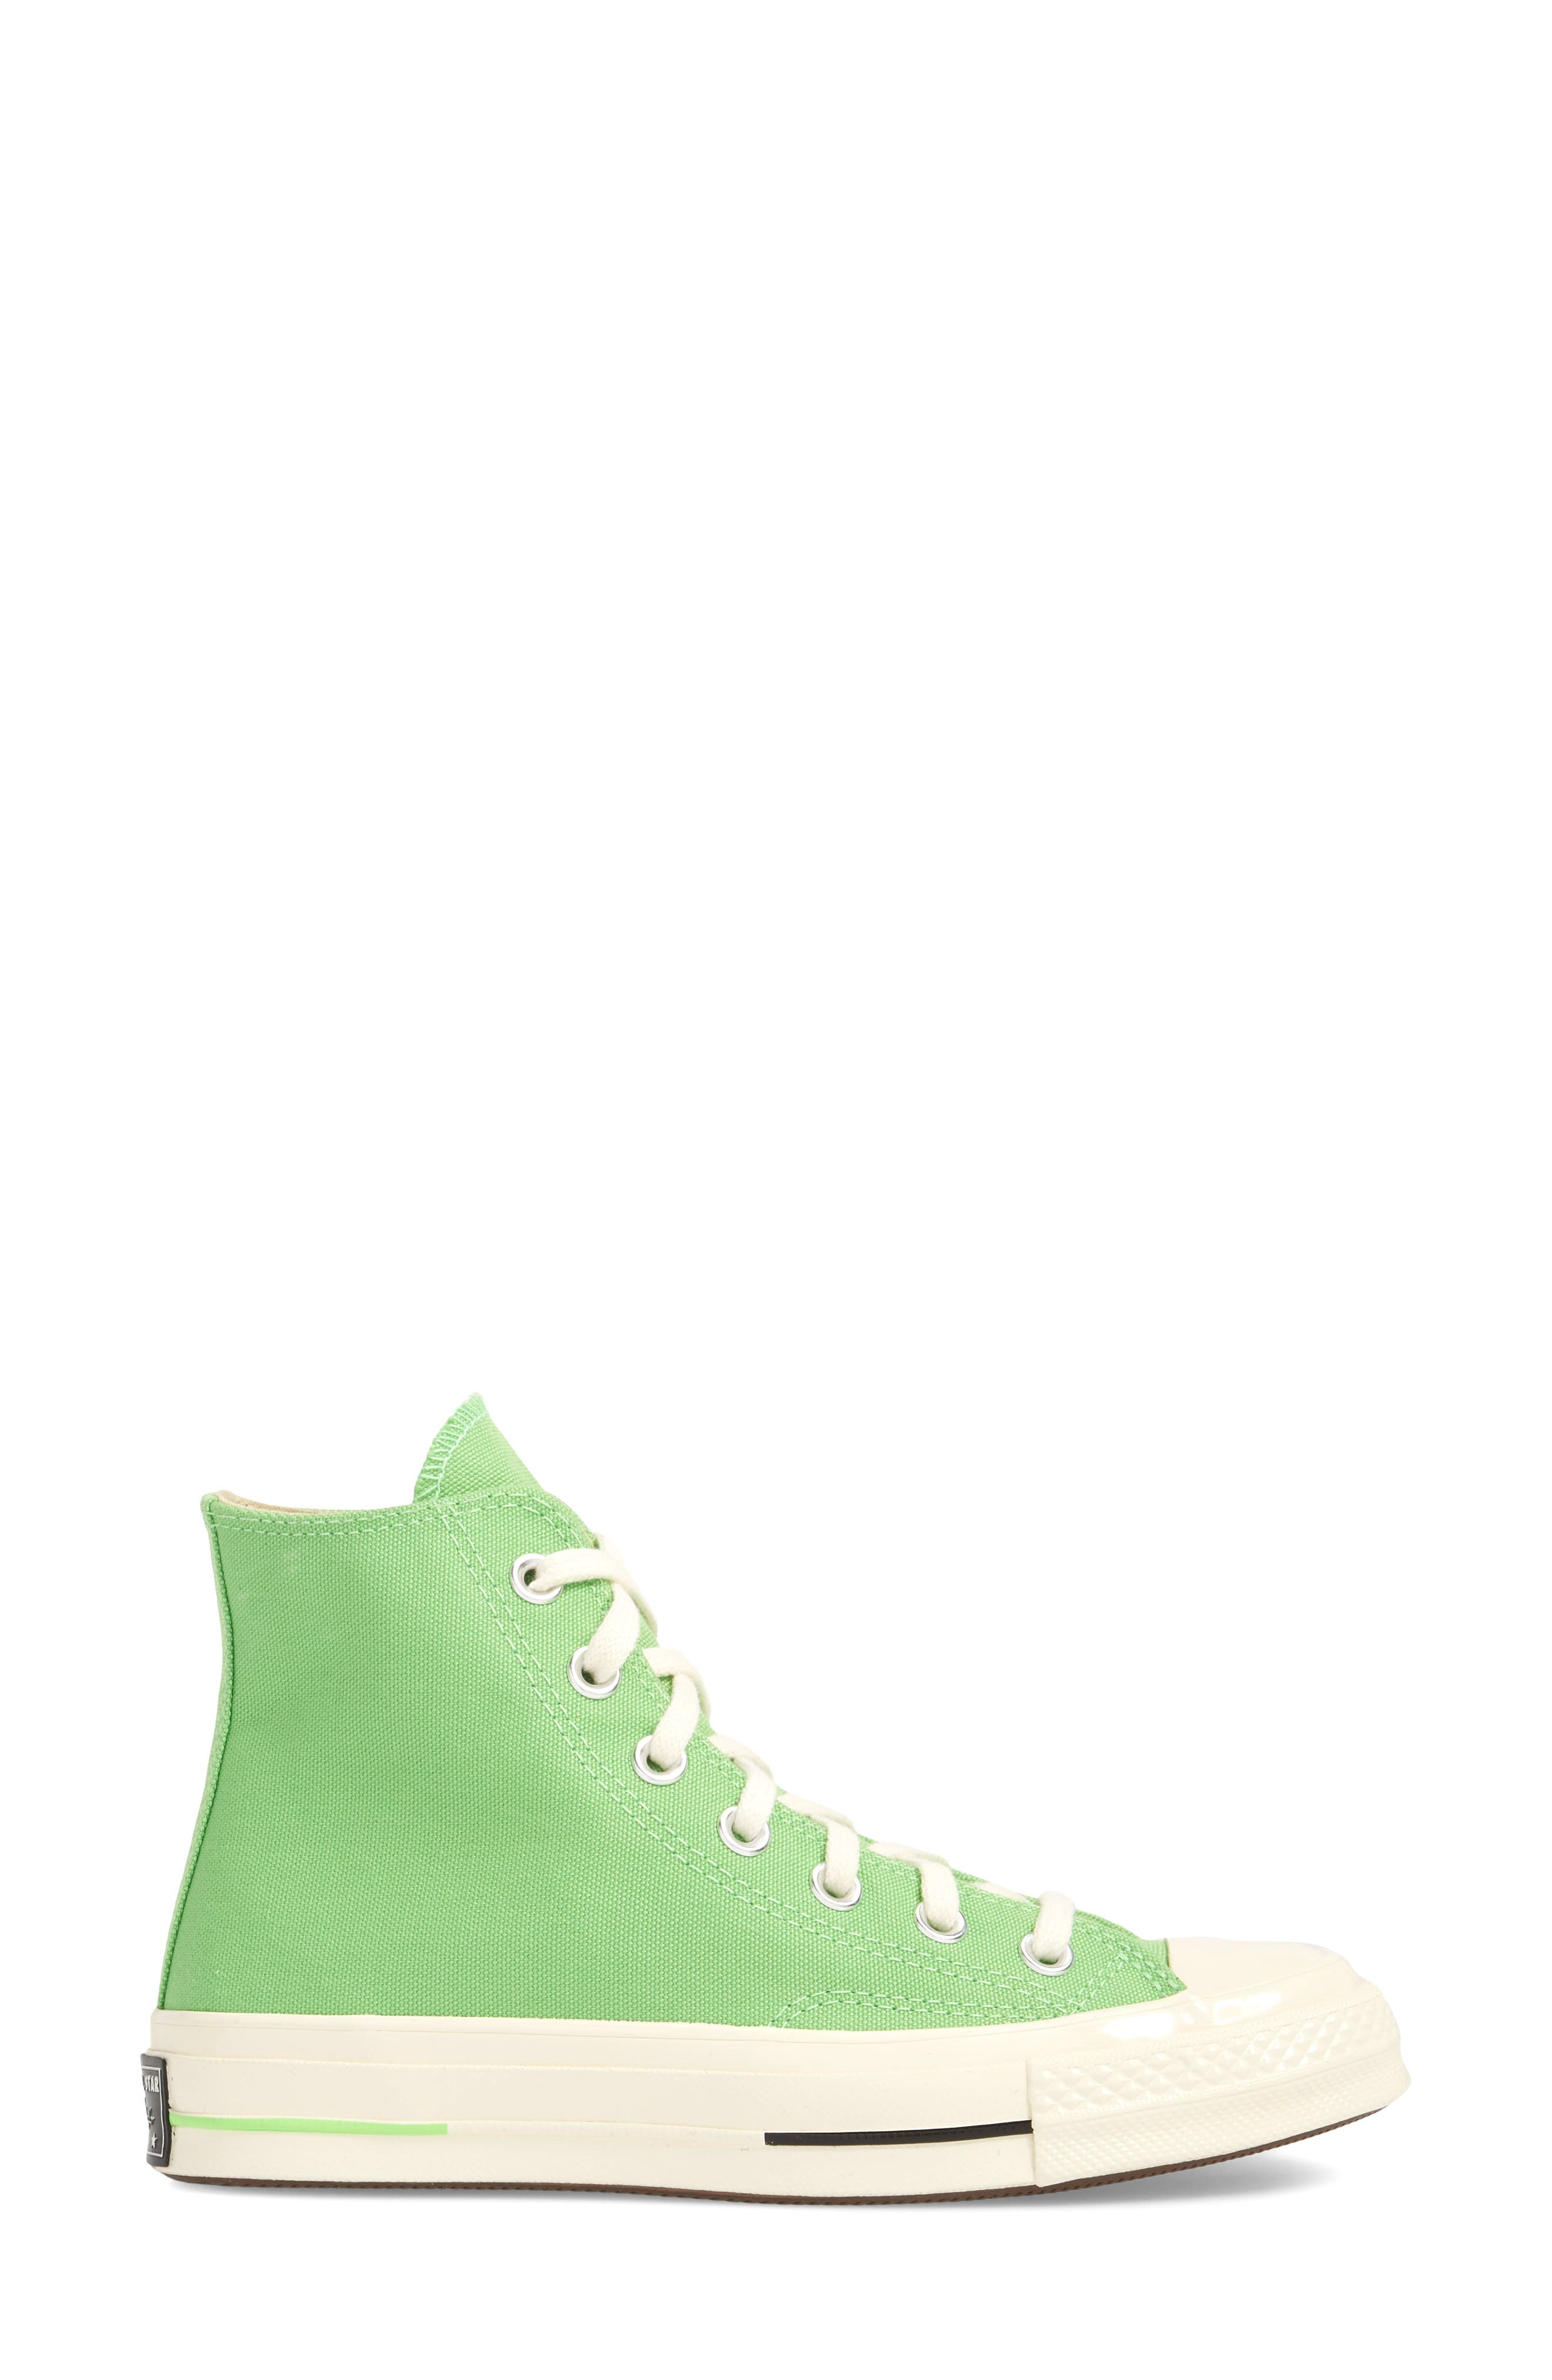 Chuck Taylor<sup>®</sup> All Star<sup>®</sup> 70 Brights High Top Sneaker,                             Alternate thumbnail 3, color,                             336